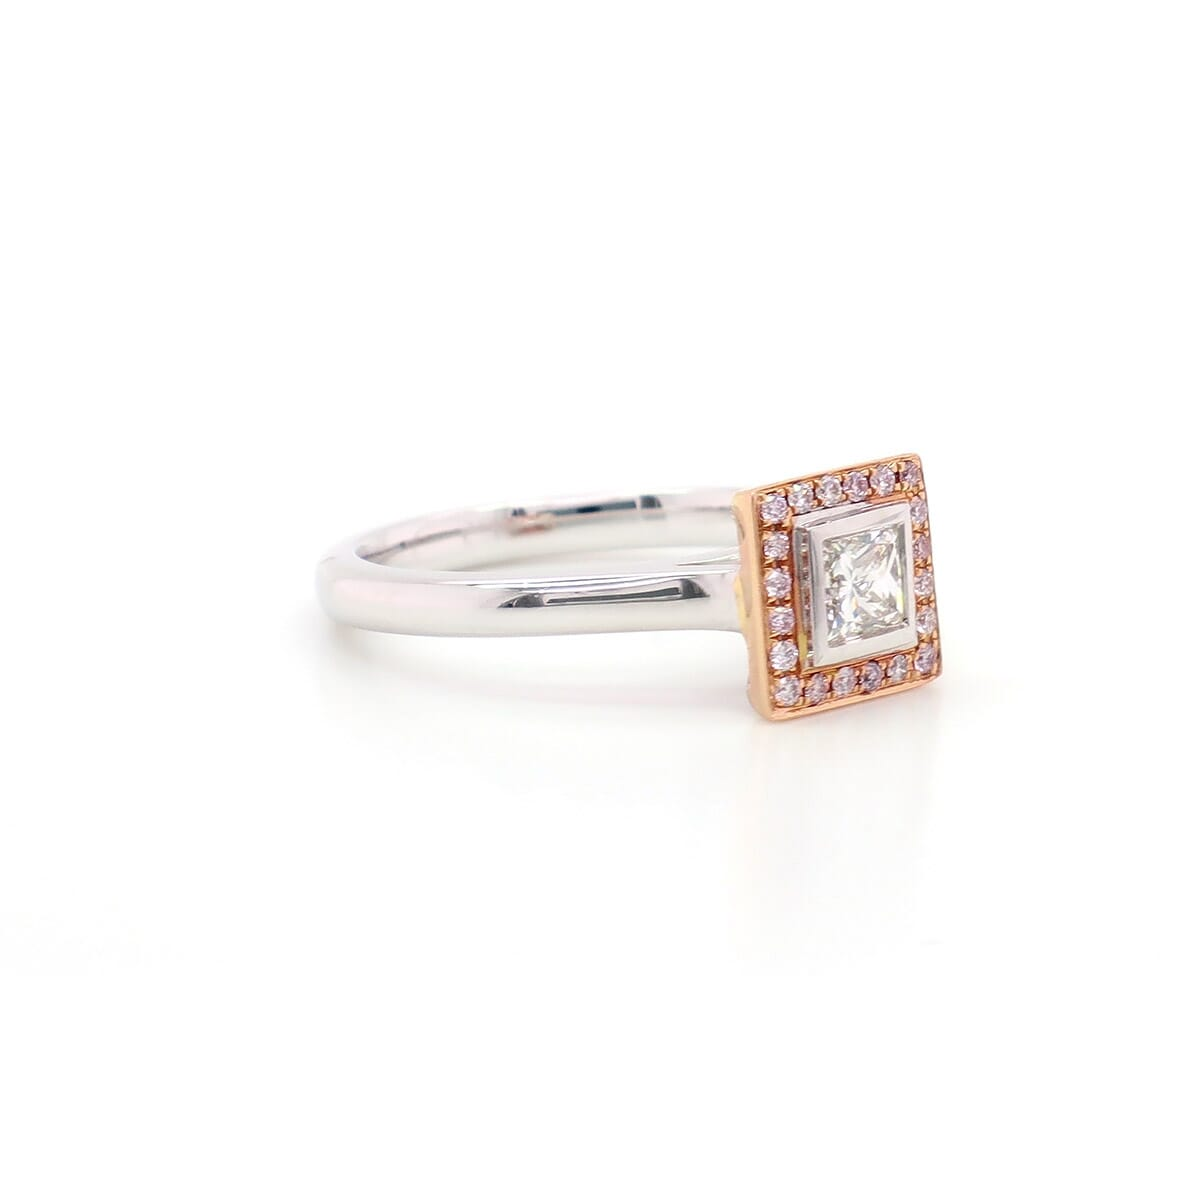 KIMBERLEY CLASSIC LADY HALO RING